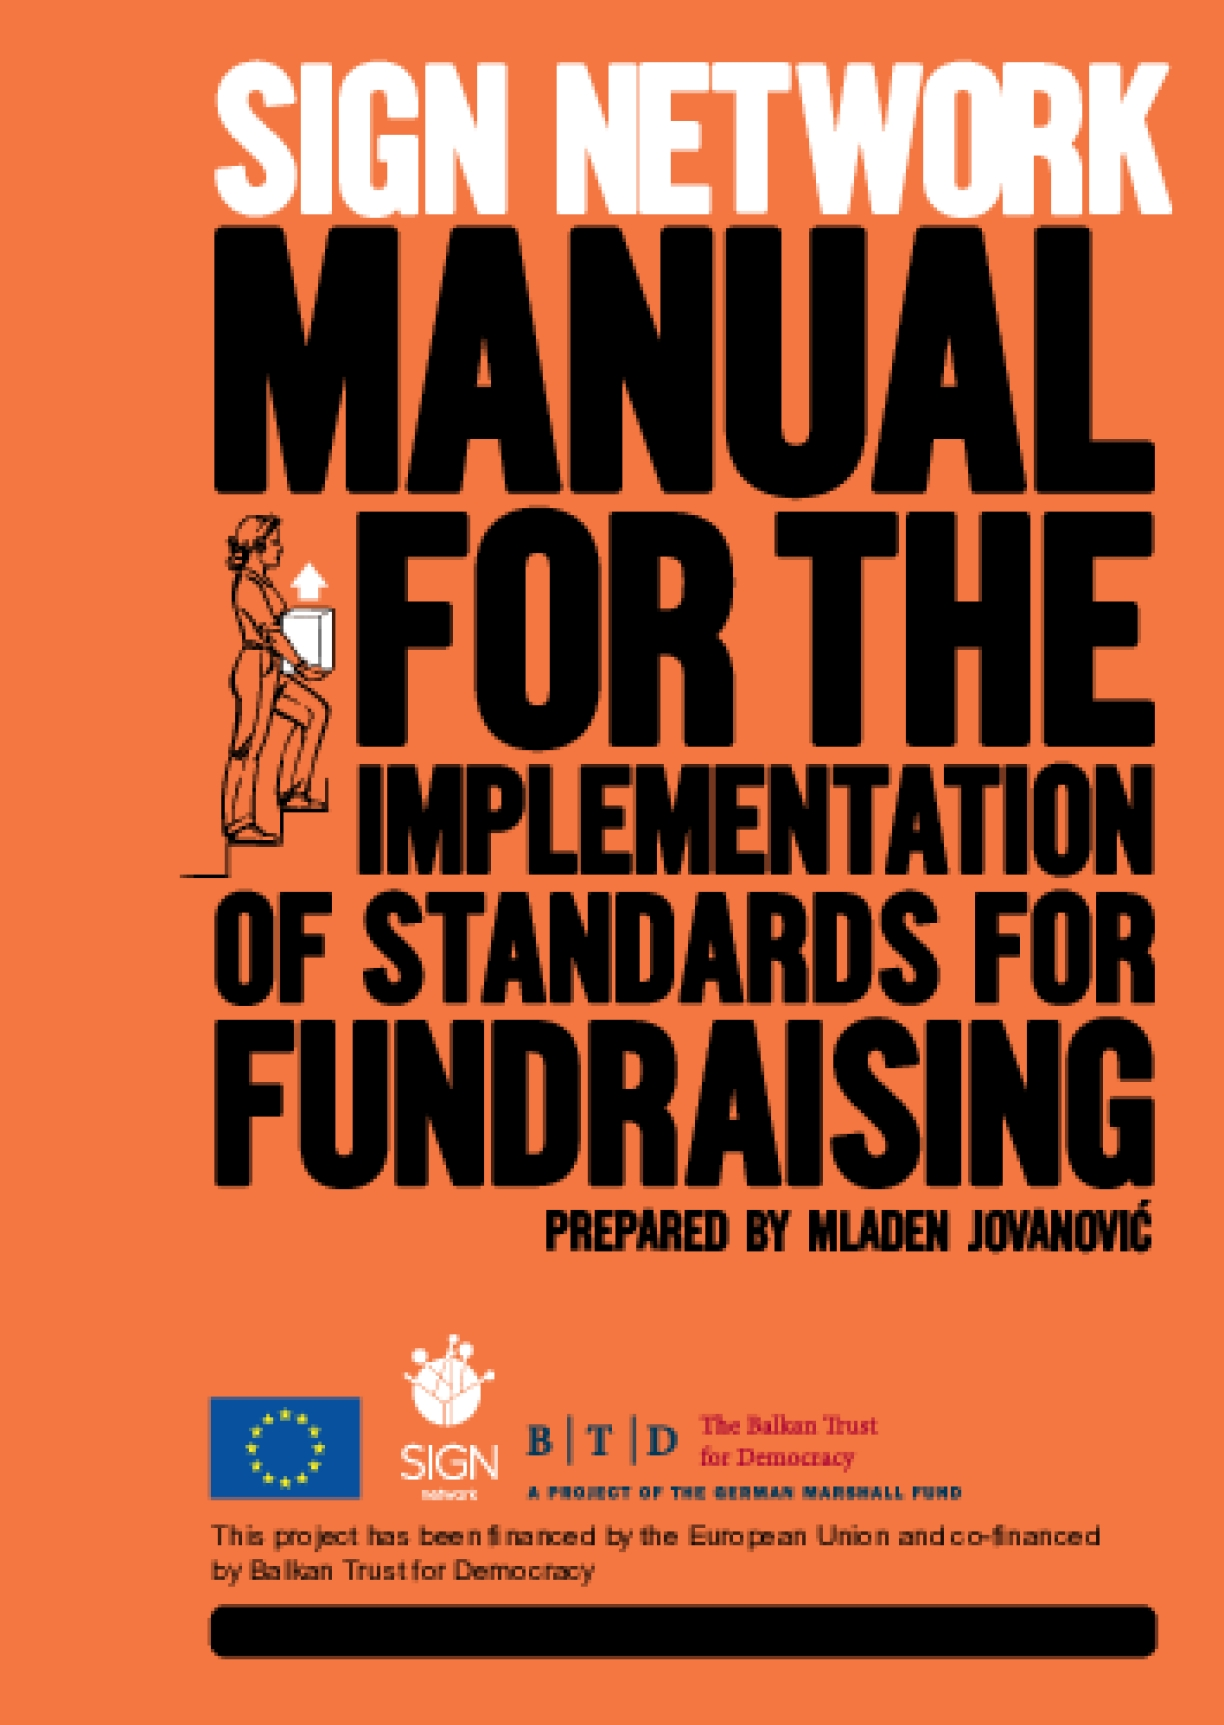 SIGN Network Manual for the Implementation of Standards for Fundaraising